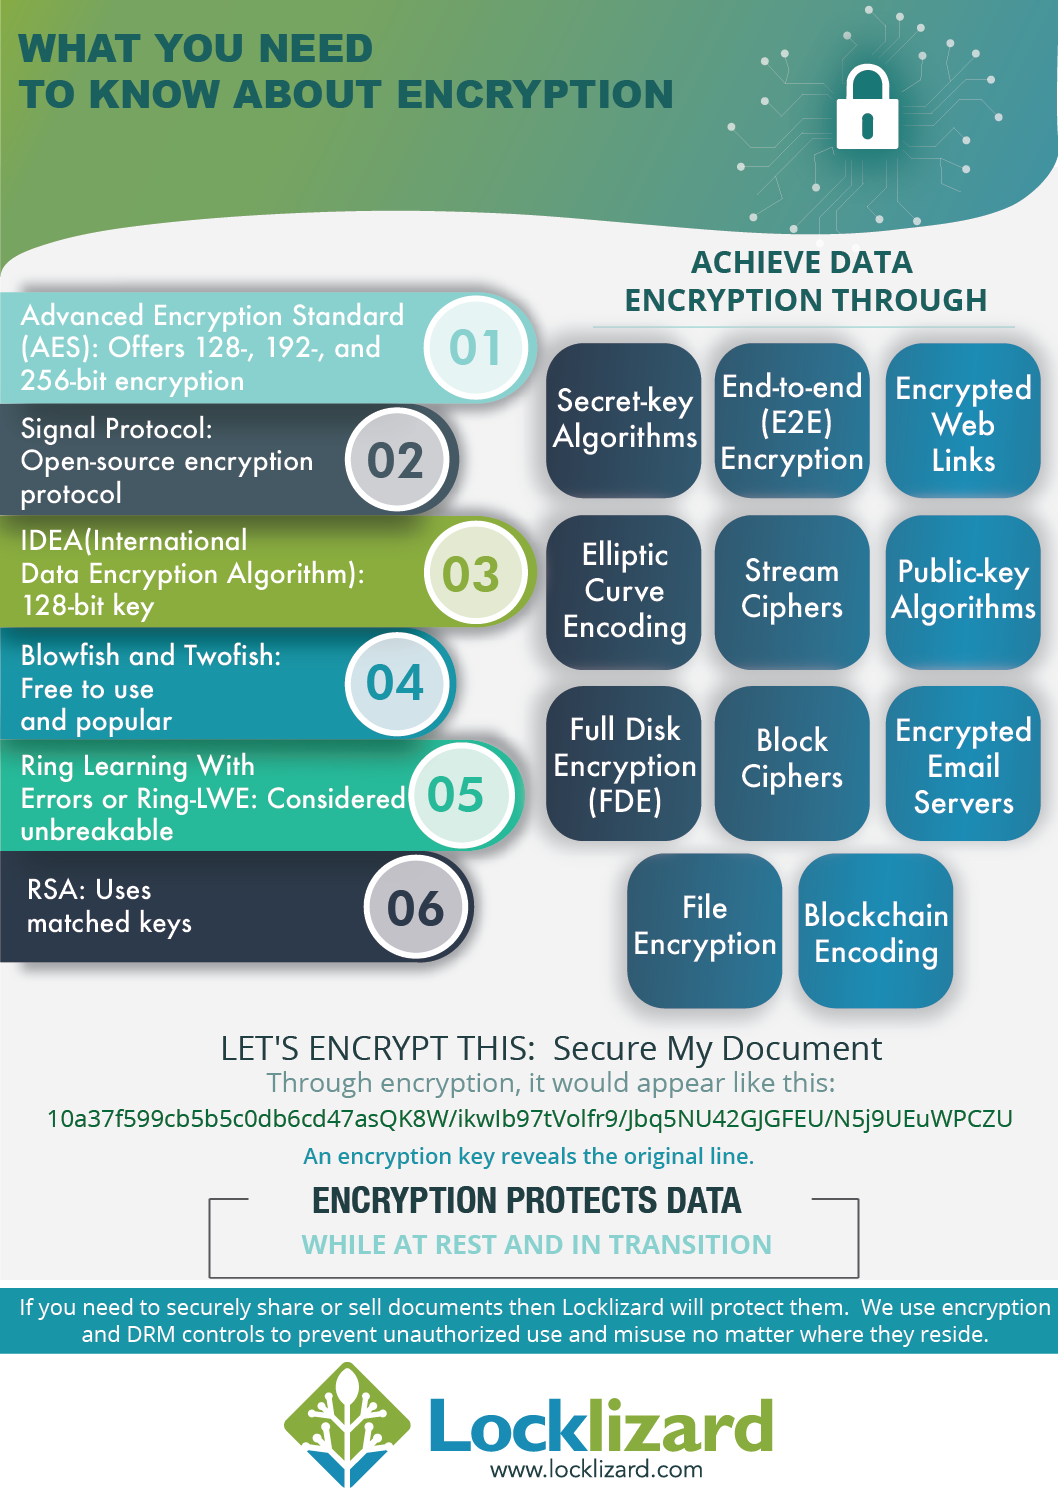 What You Need to Know About Encryption